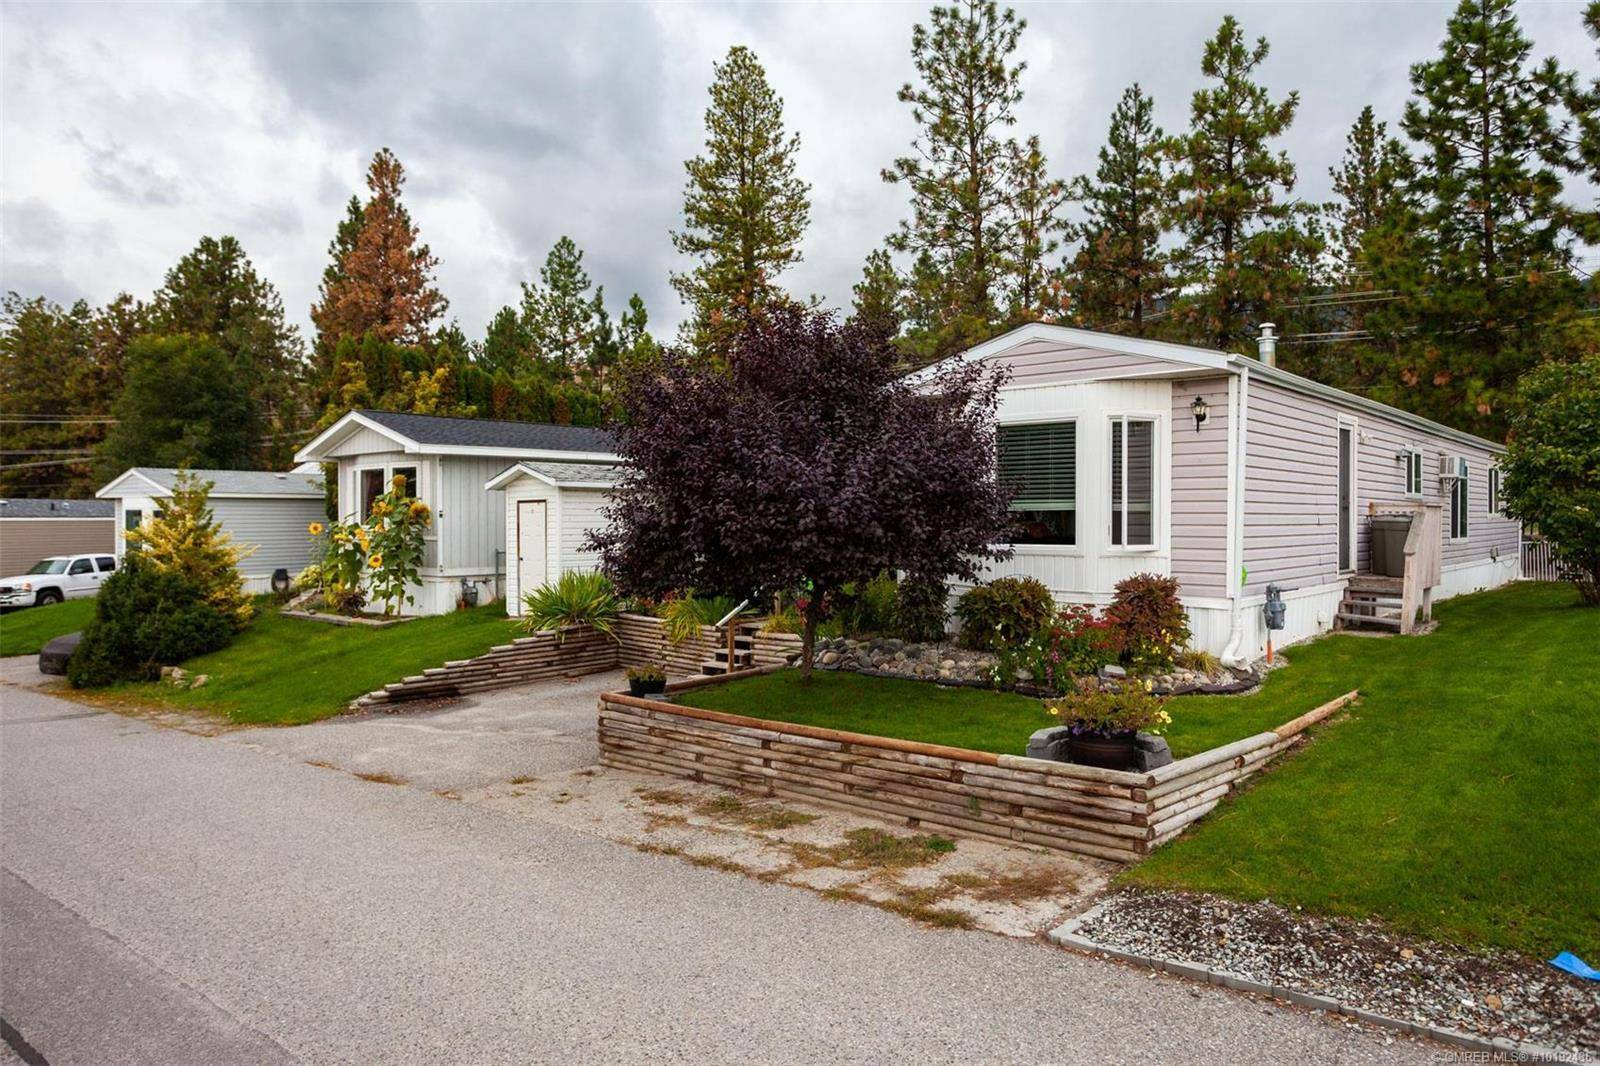 Residential property for sale at 3225 Shannon Lake Rd Unit 39 West Kelowna British Columbia - MLS: 10192436